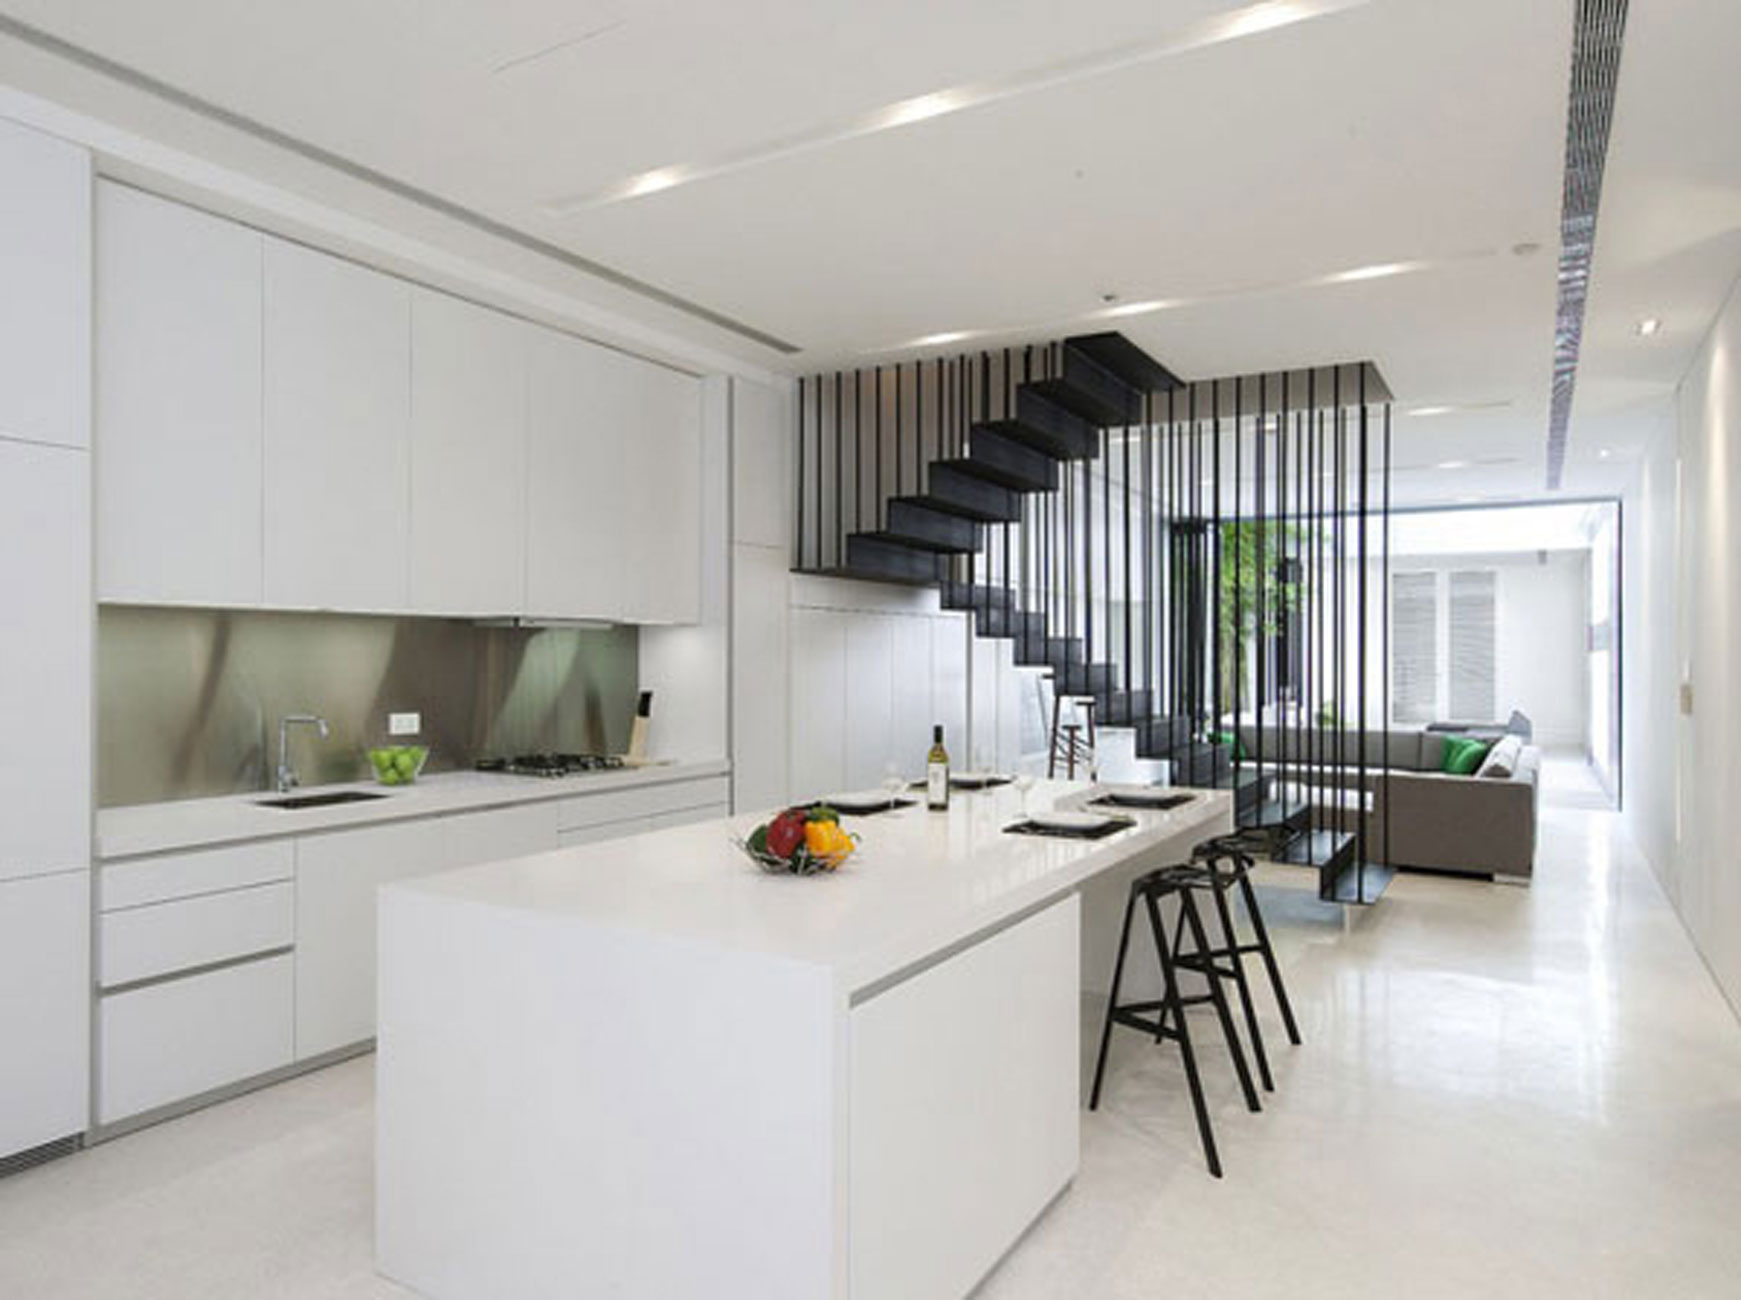 minimalist-design-of-apartment-kicthen-set-with-black-modern-bar-stools-beside-the-living-room-space